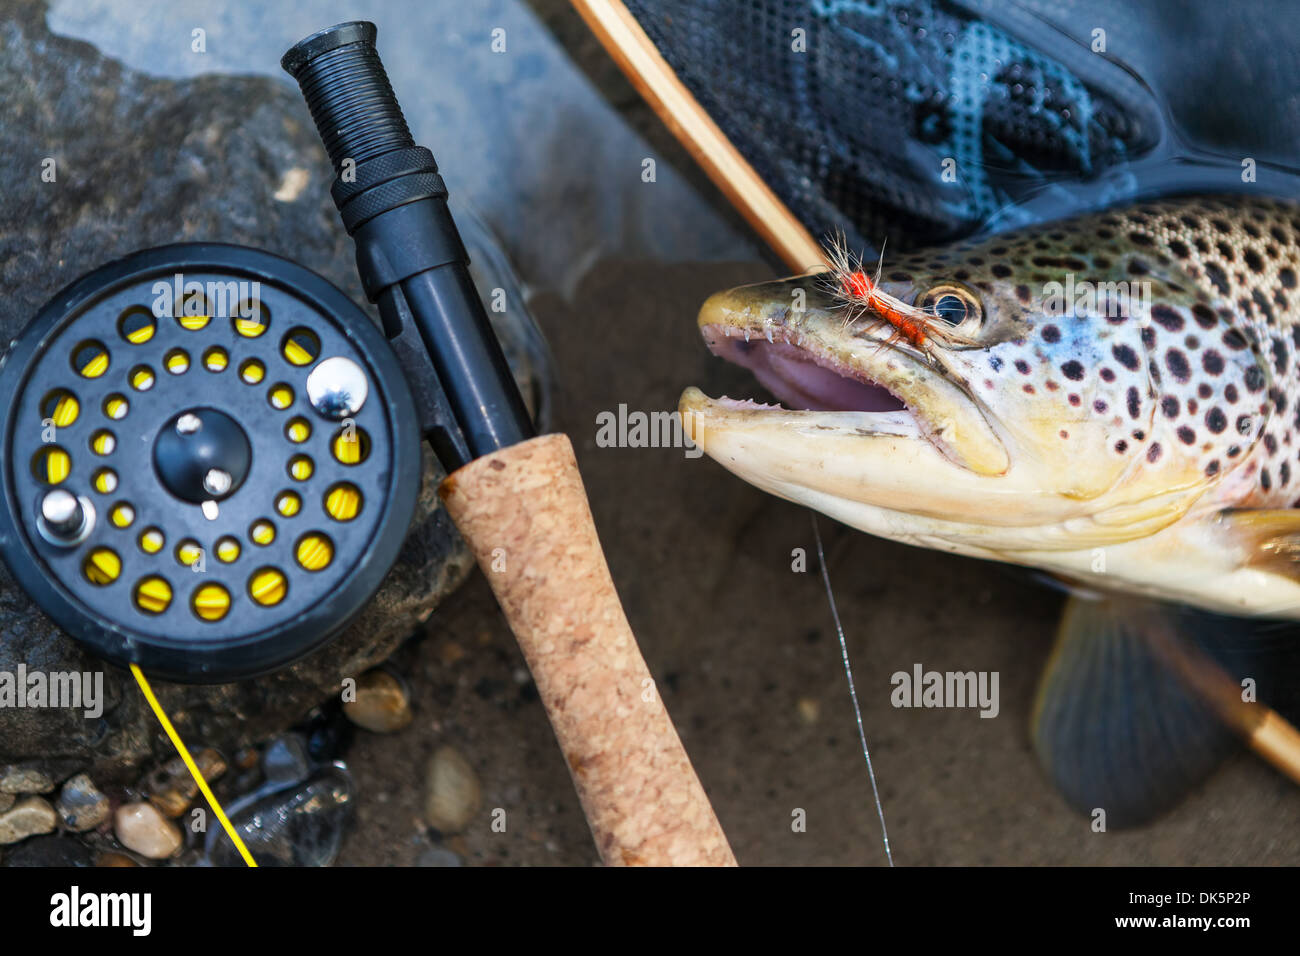 A fly fisherman's freshly caught brown trout, shallow depth of field, focus on the fish. Stock Photo